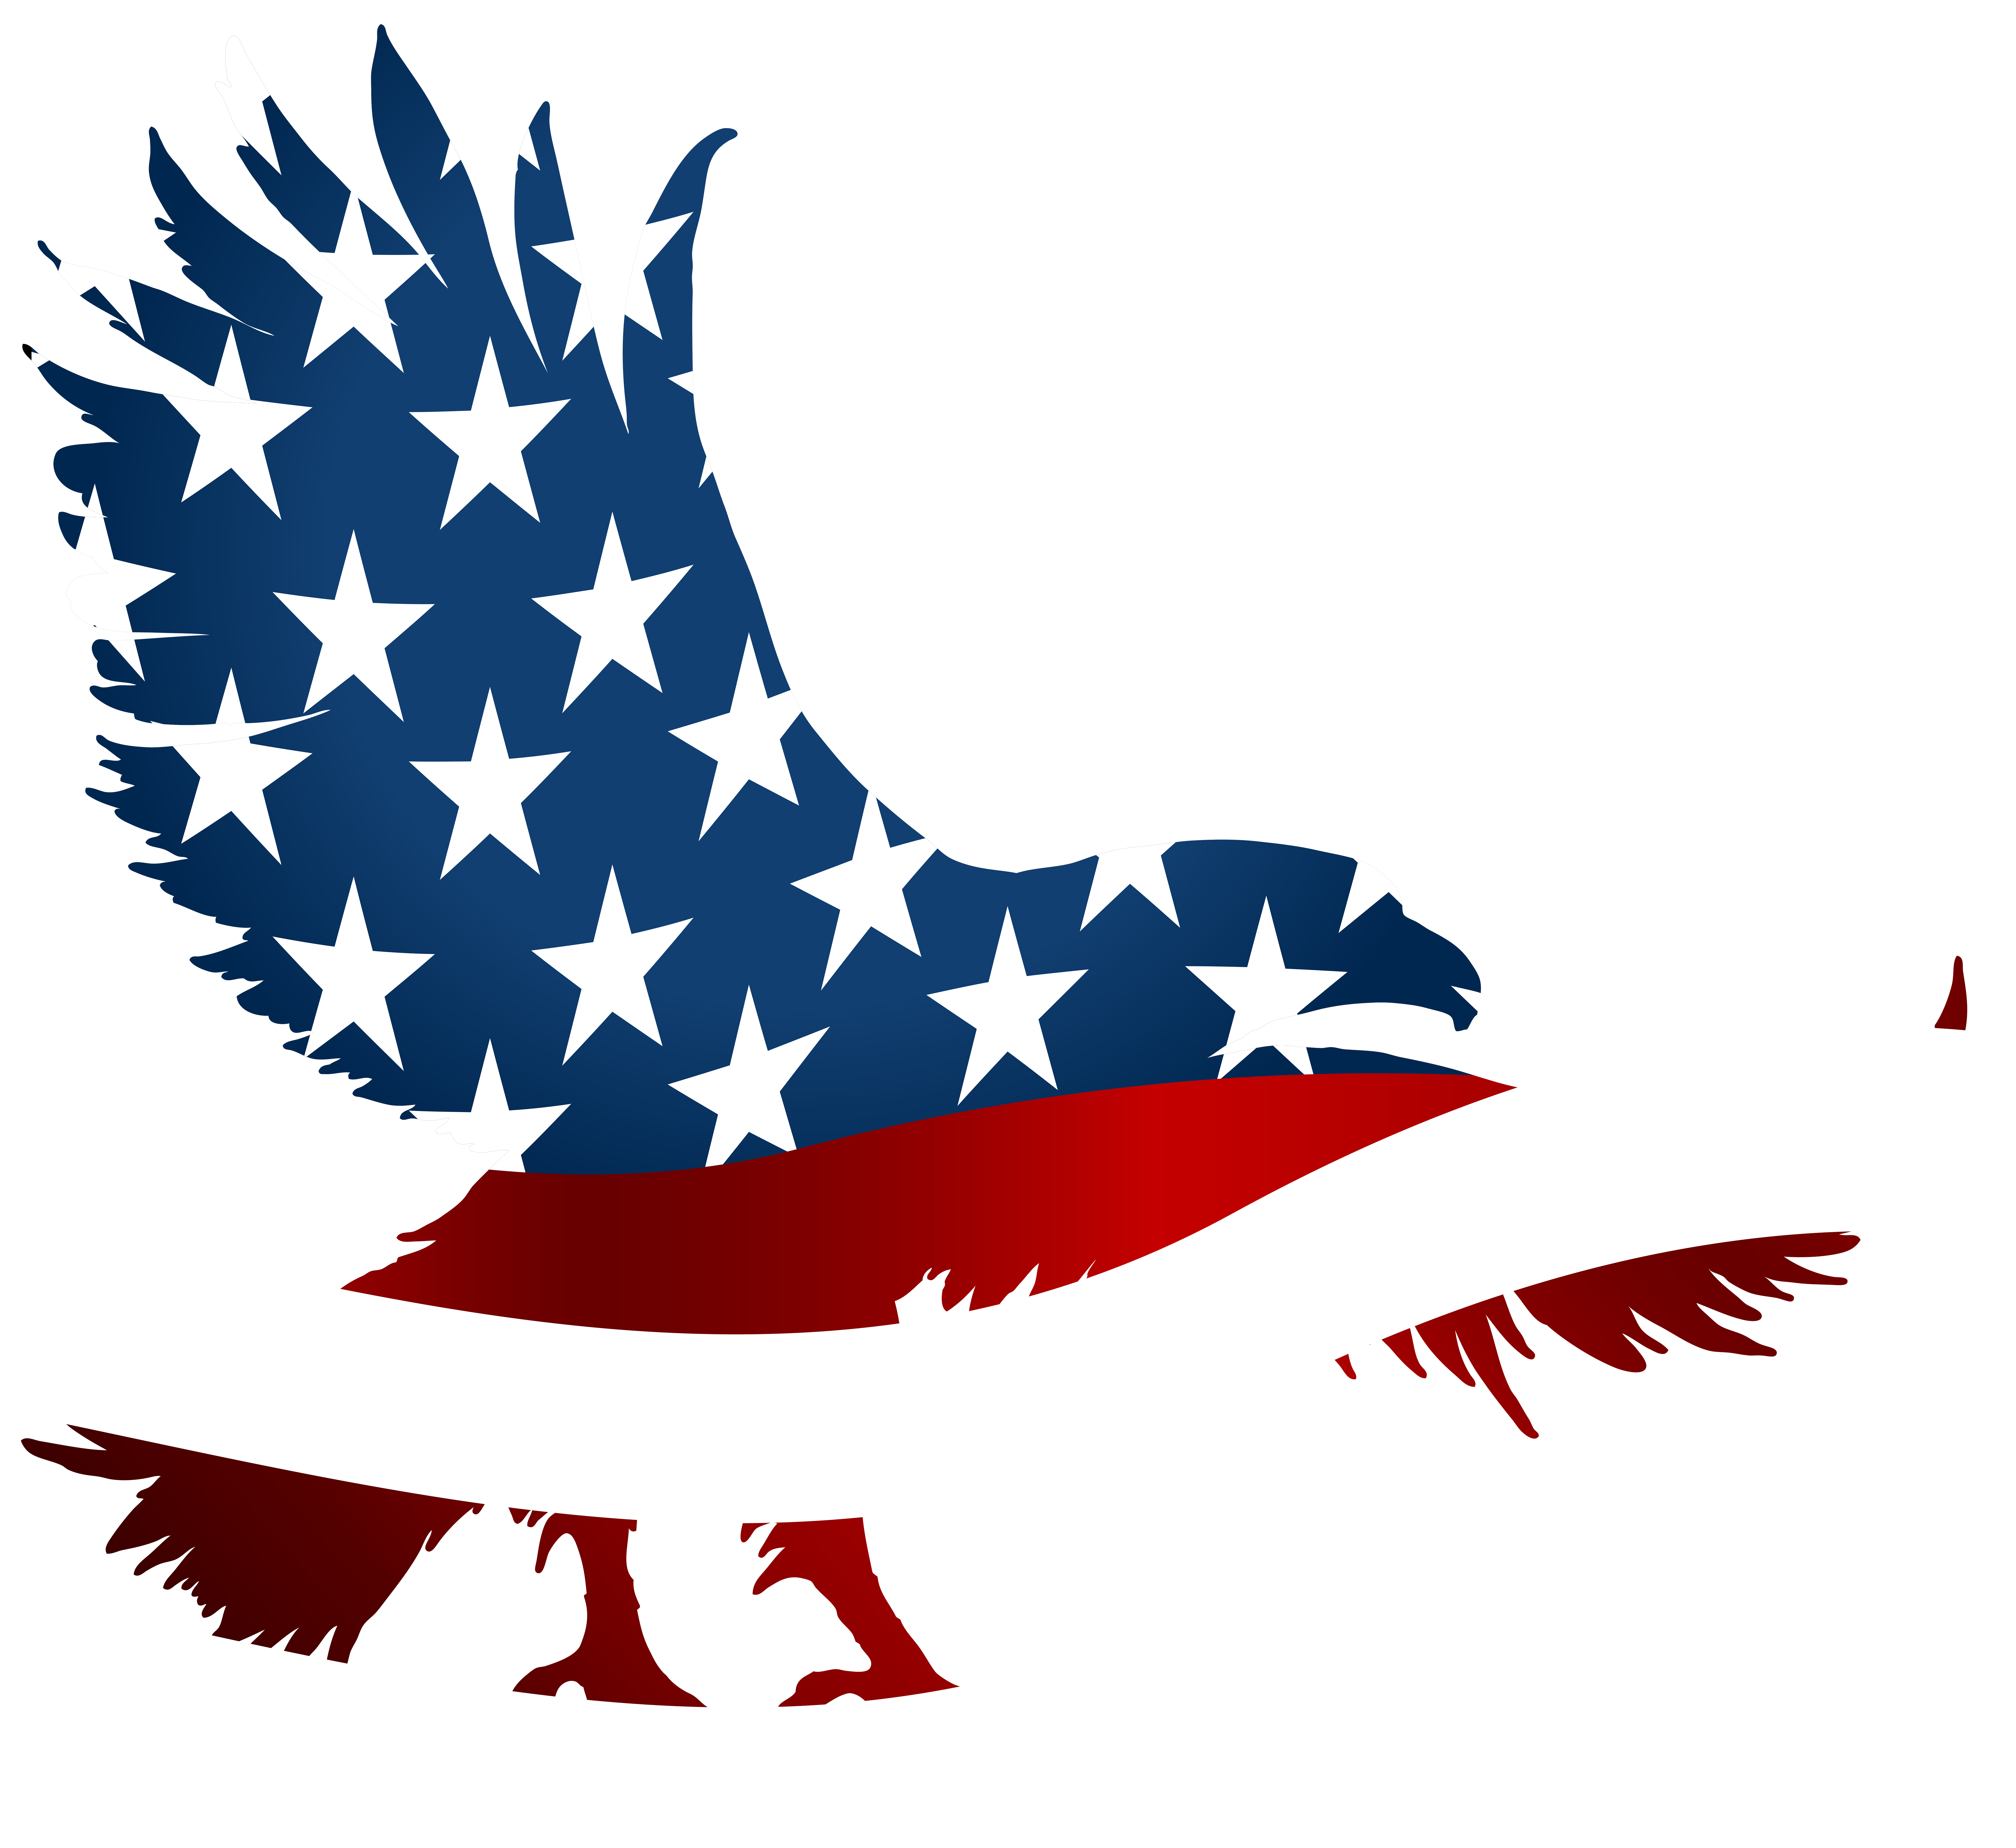 Eagle transparent png clip. Clipart bow flag american